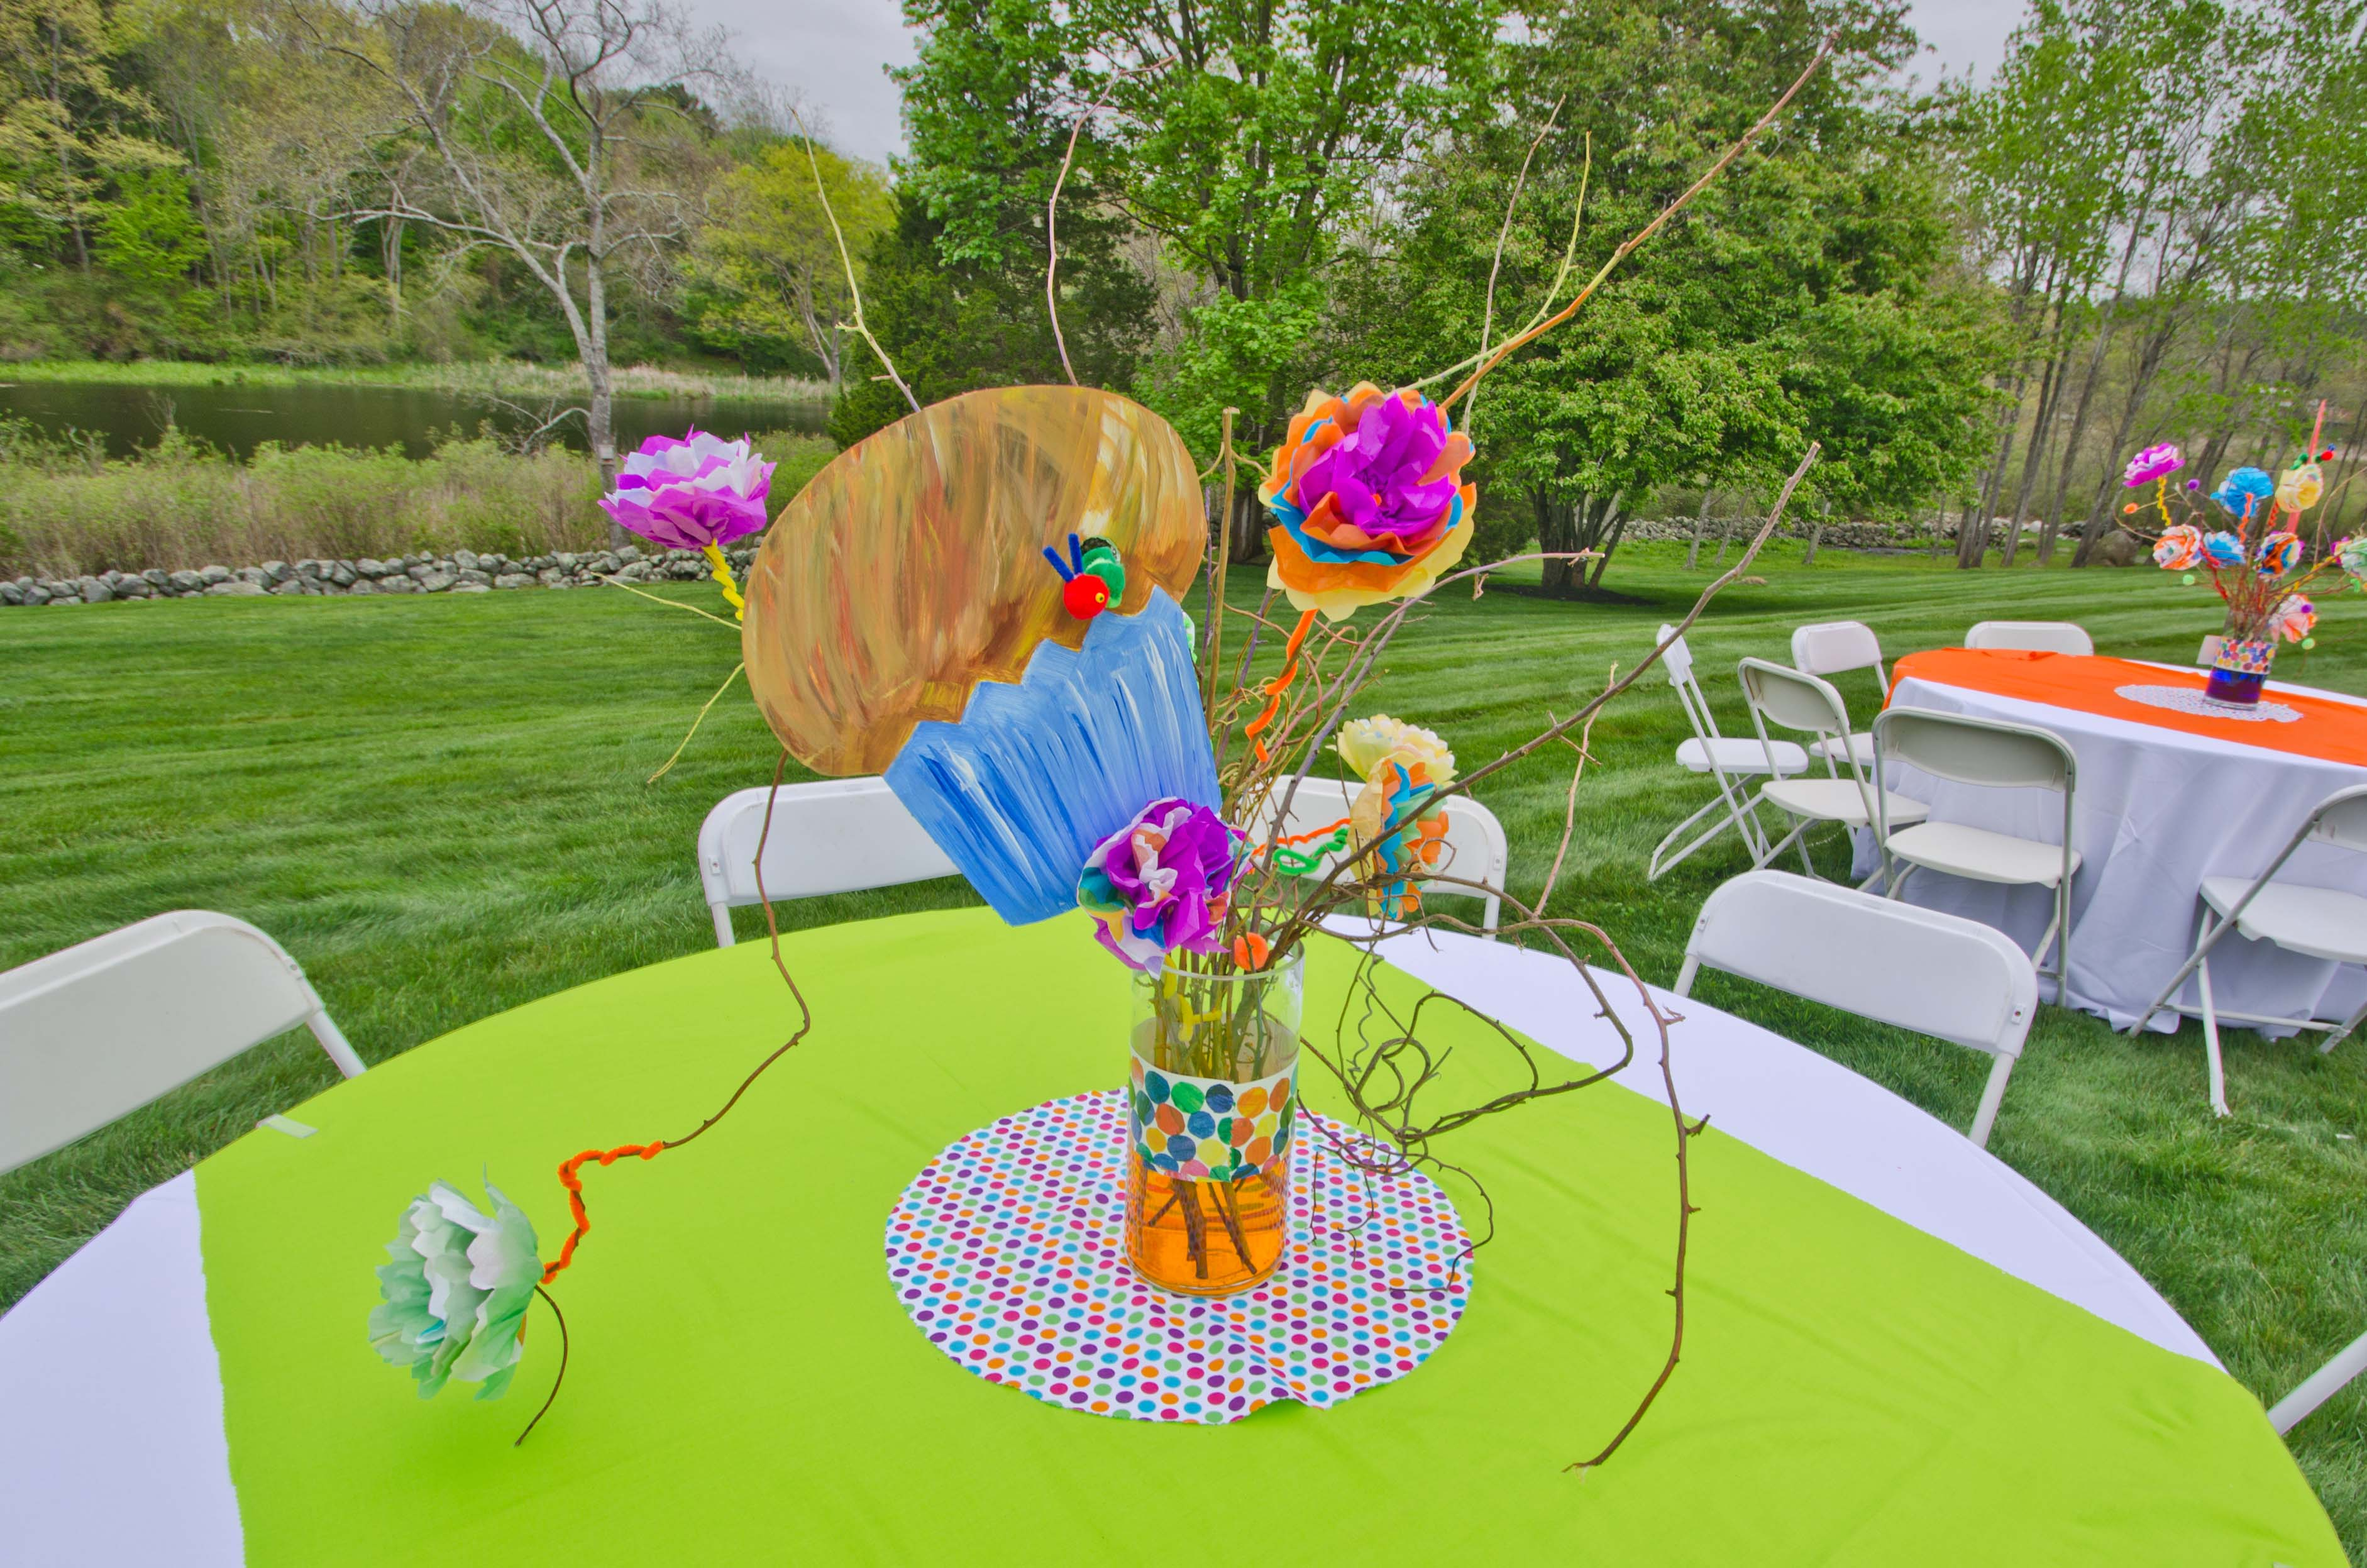 decor, madhatter, silly sally, funky, decorations, flowers, center piece,